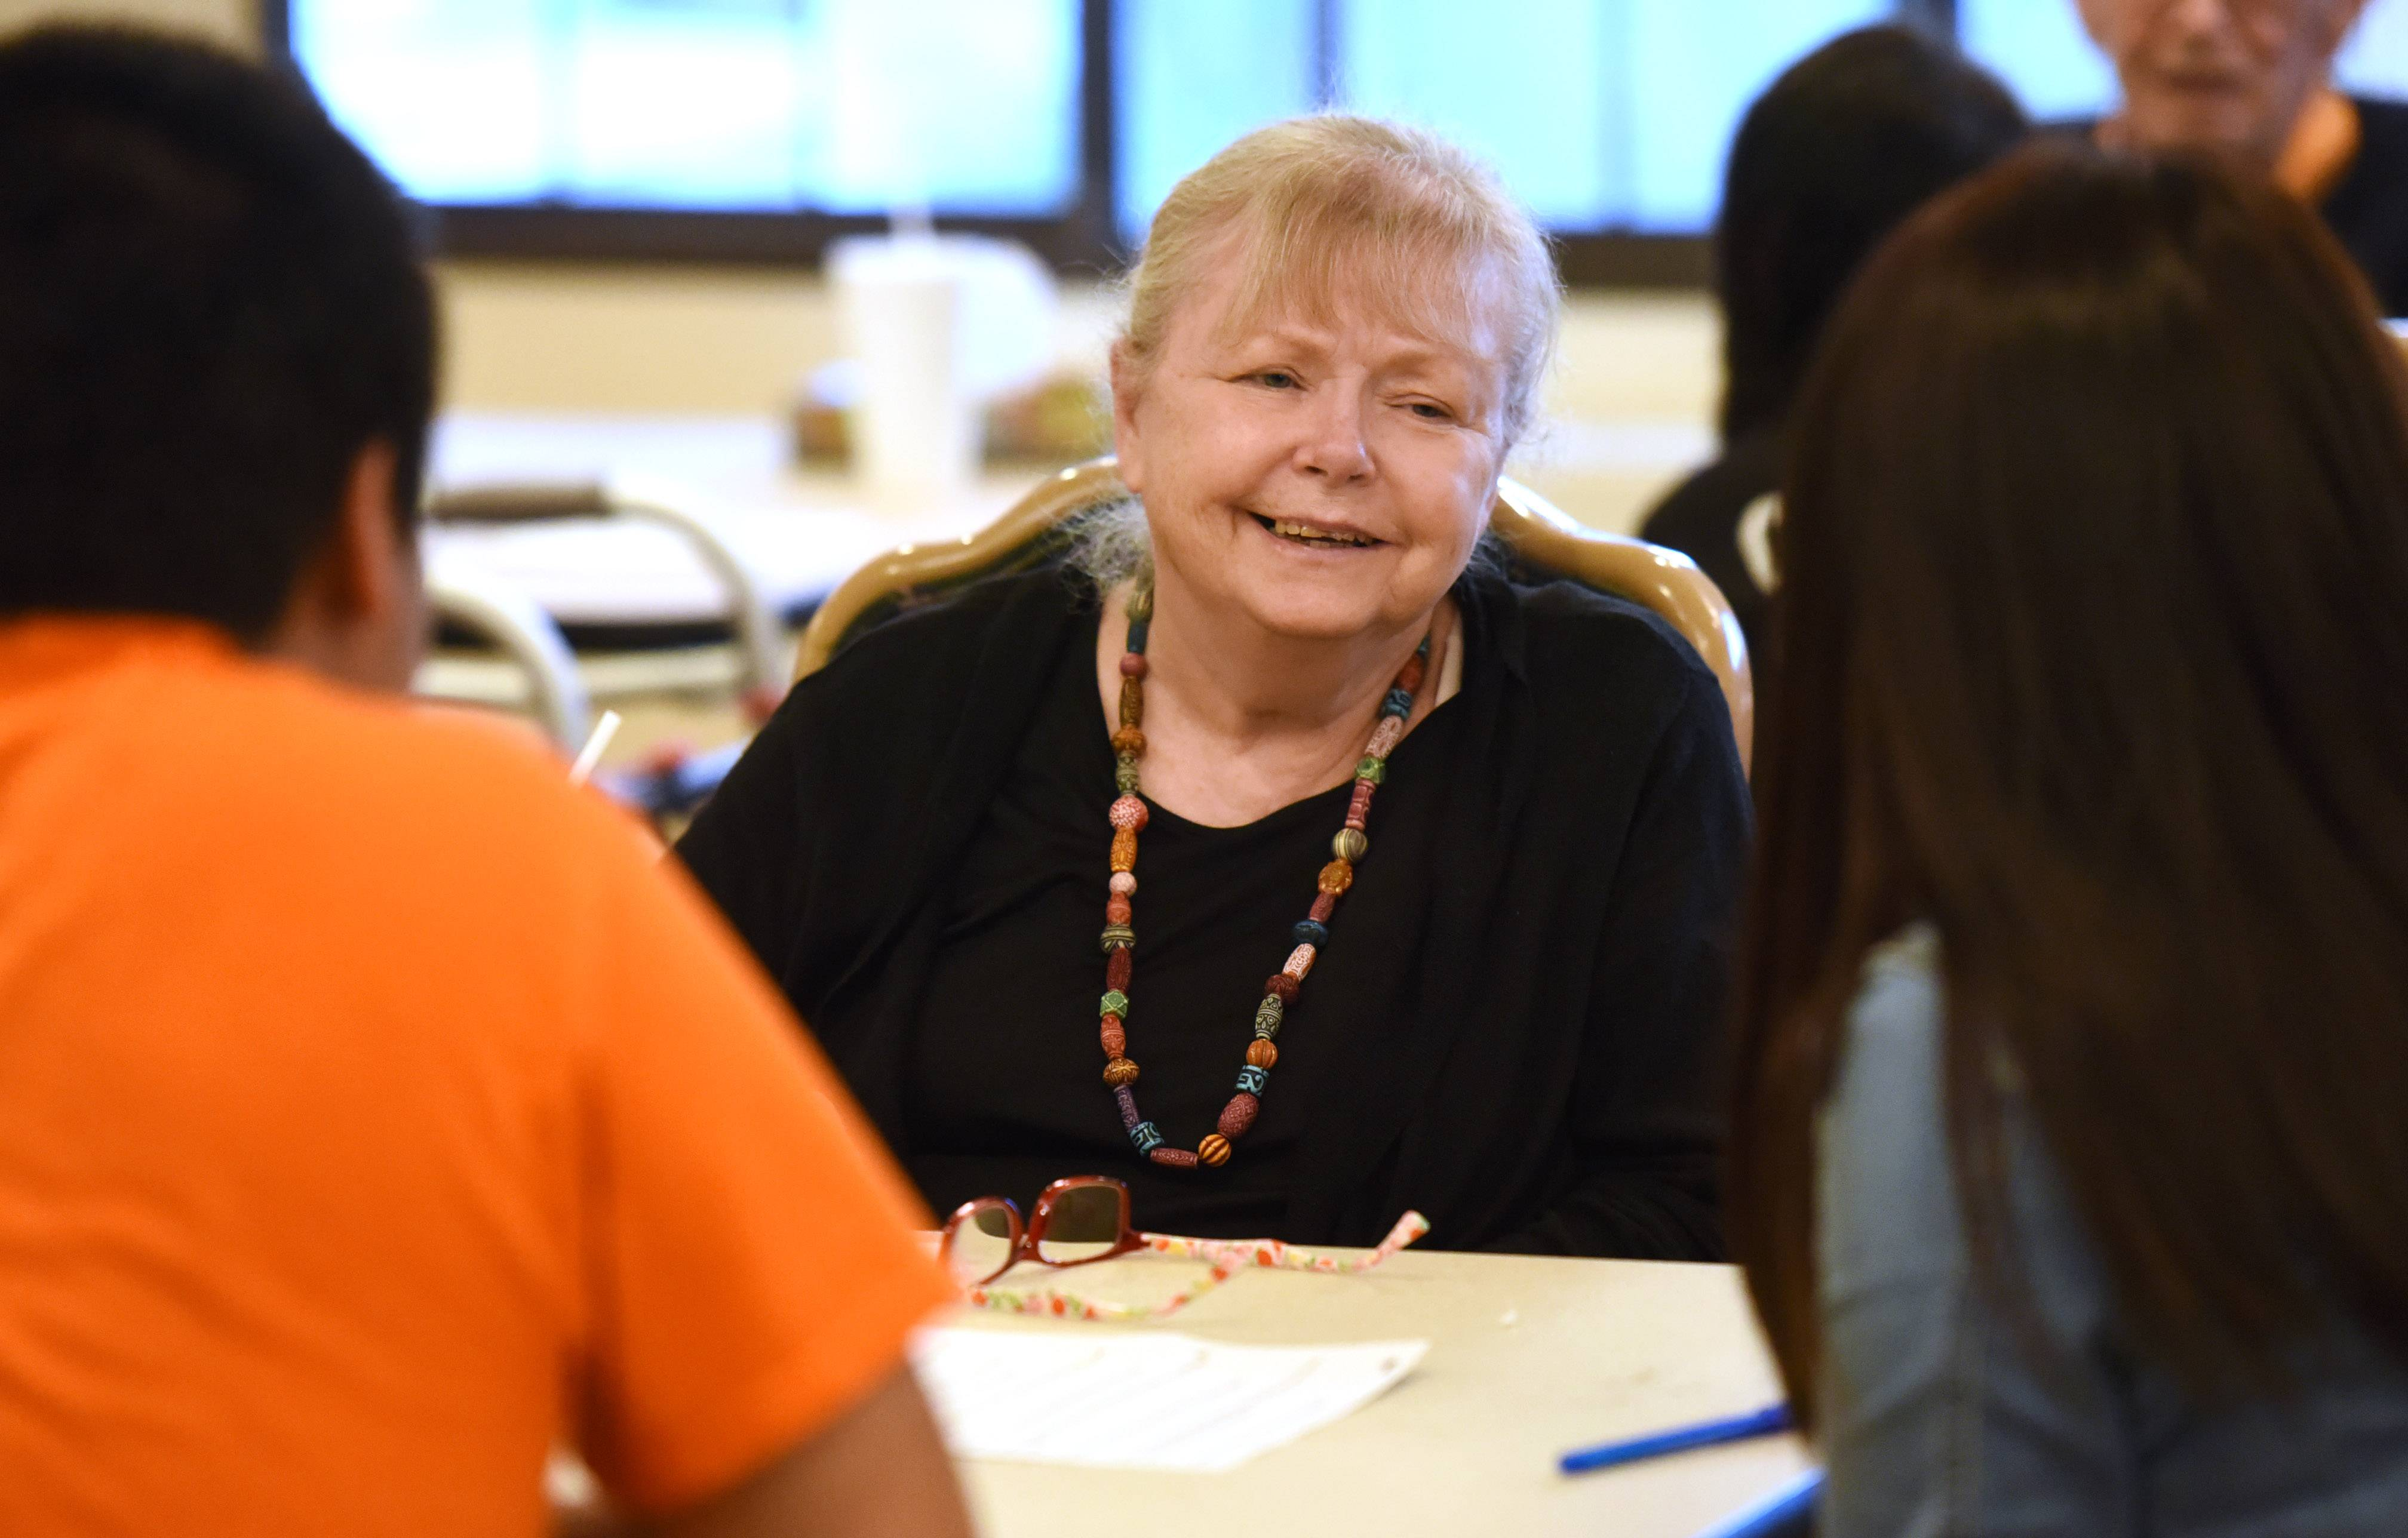 Lexington Health Care Center resident Kathy Morris chats with Wheeling High School students during a visit to the Wheeling center.